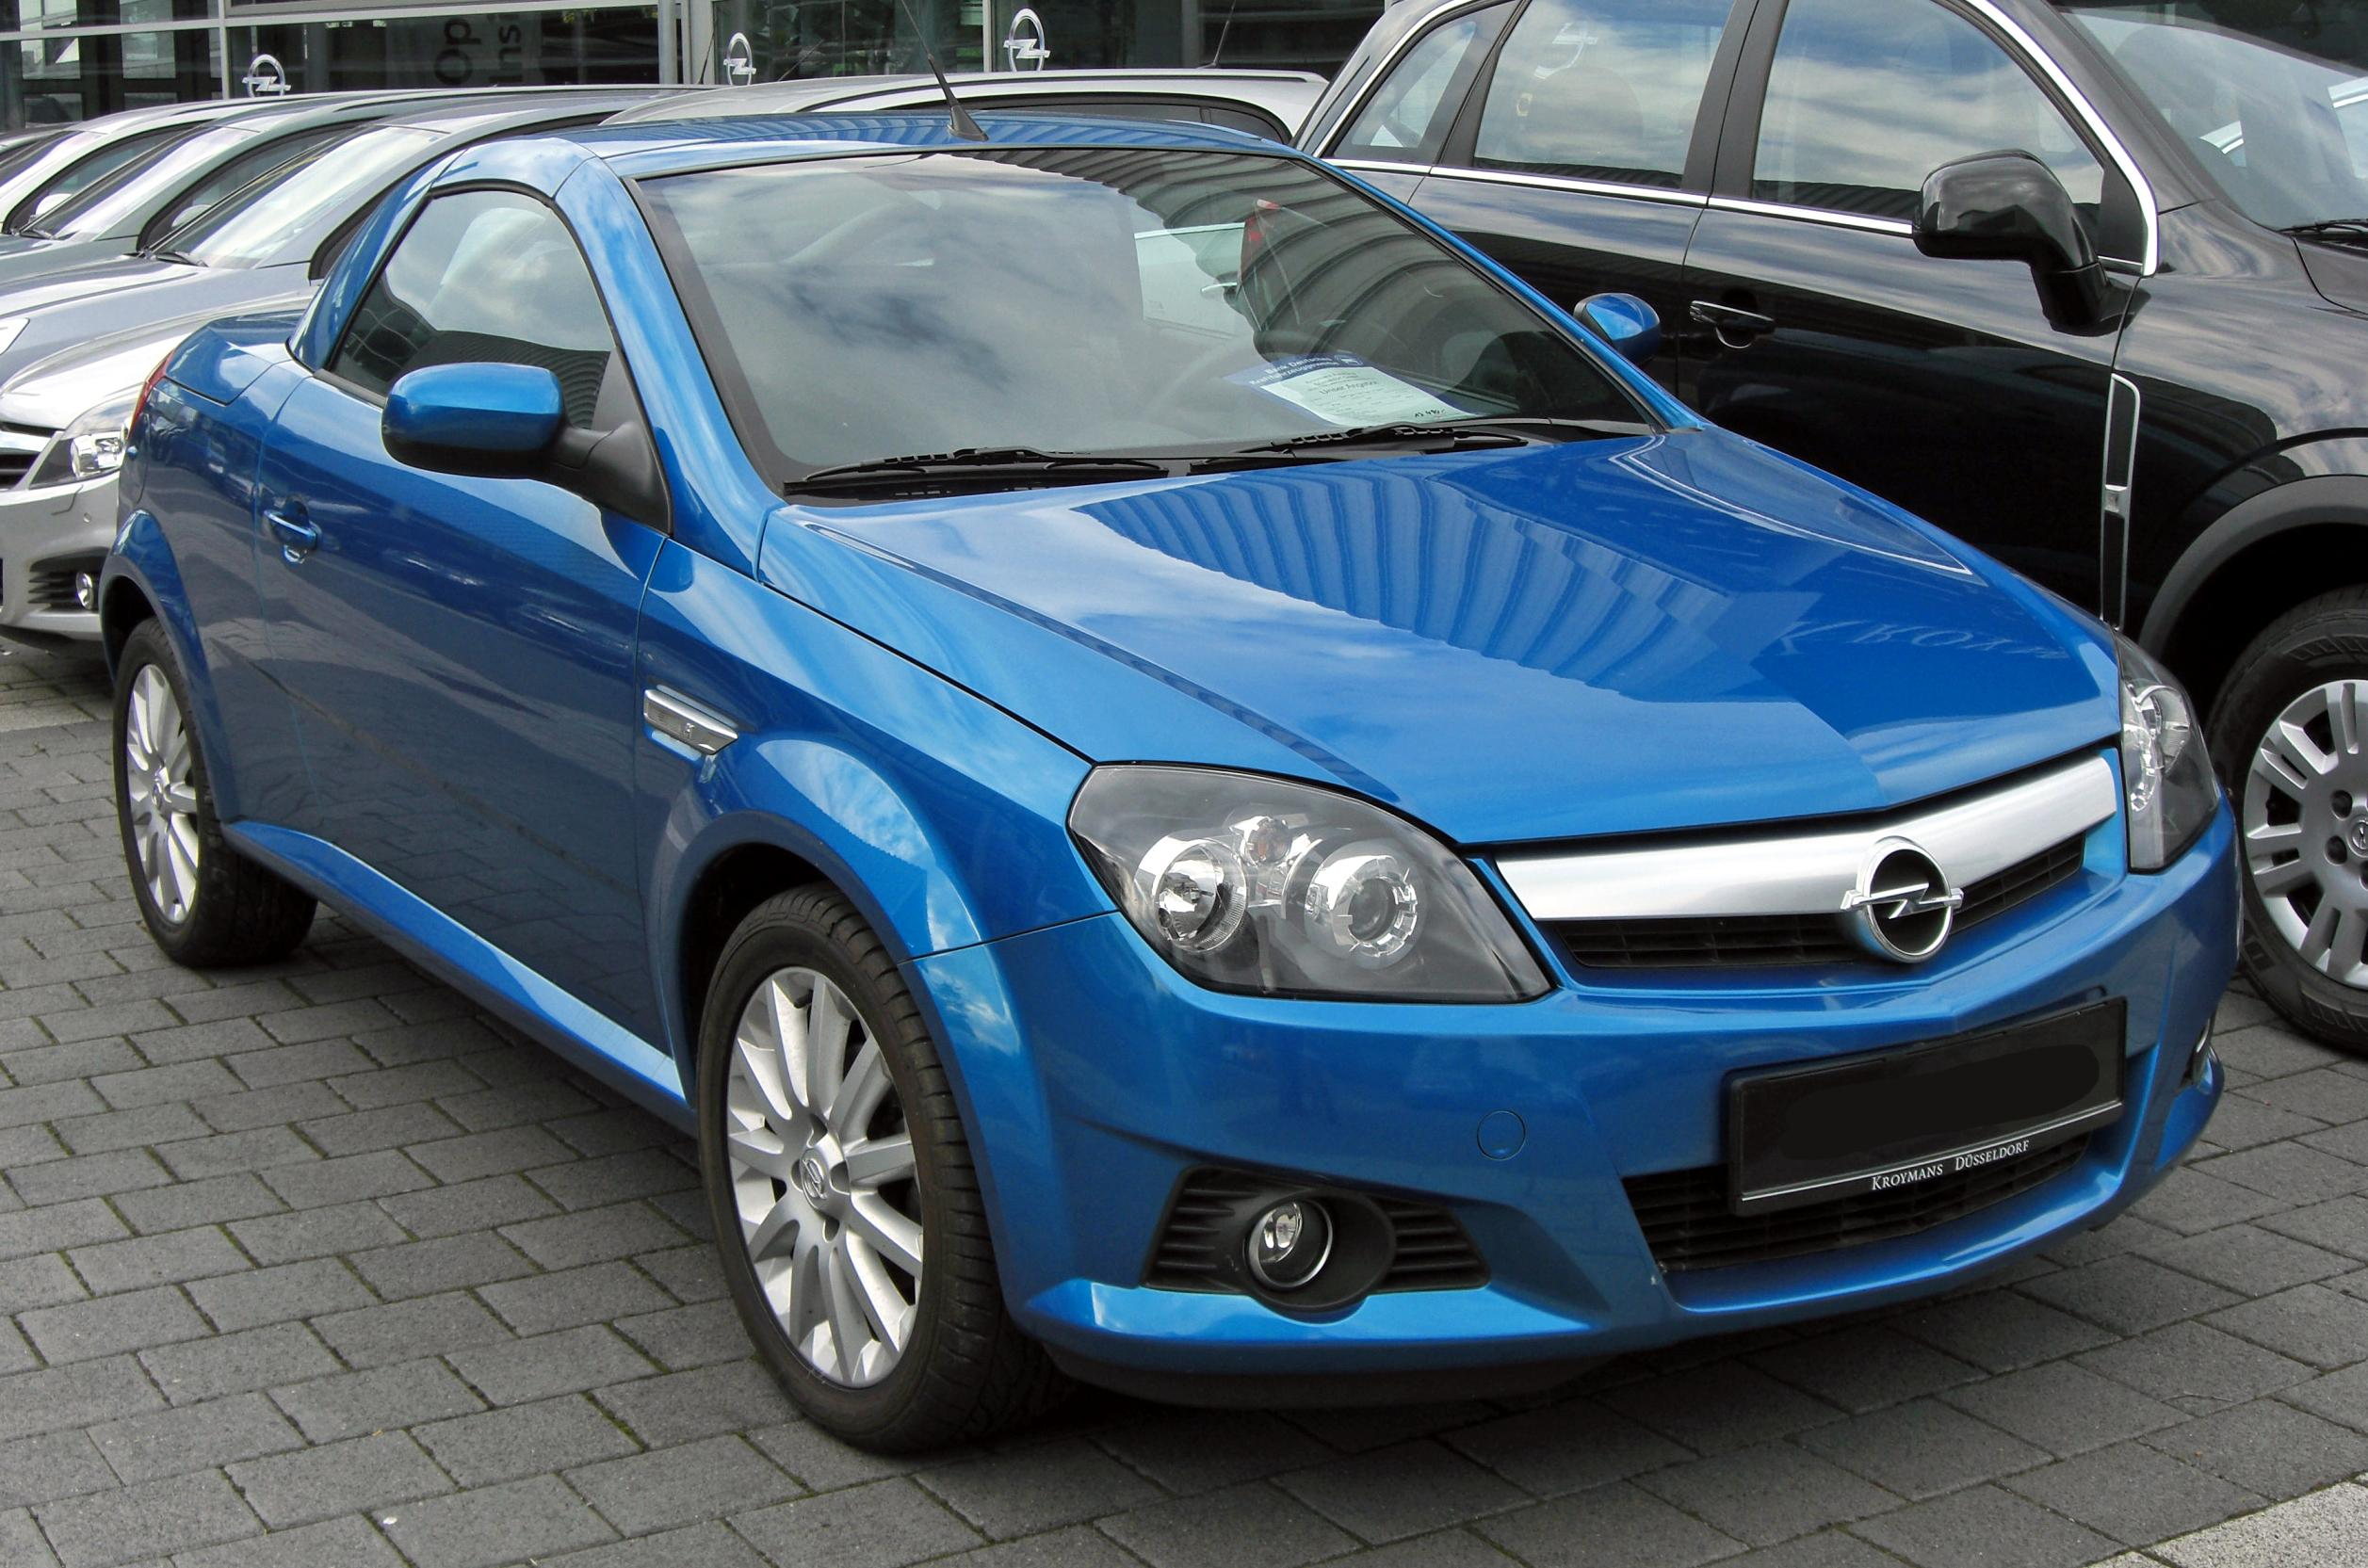 2009 opel tigra twintop partsopen. Black Bedroom Furniture Sets. Home Design Ideas